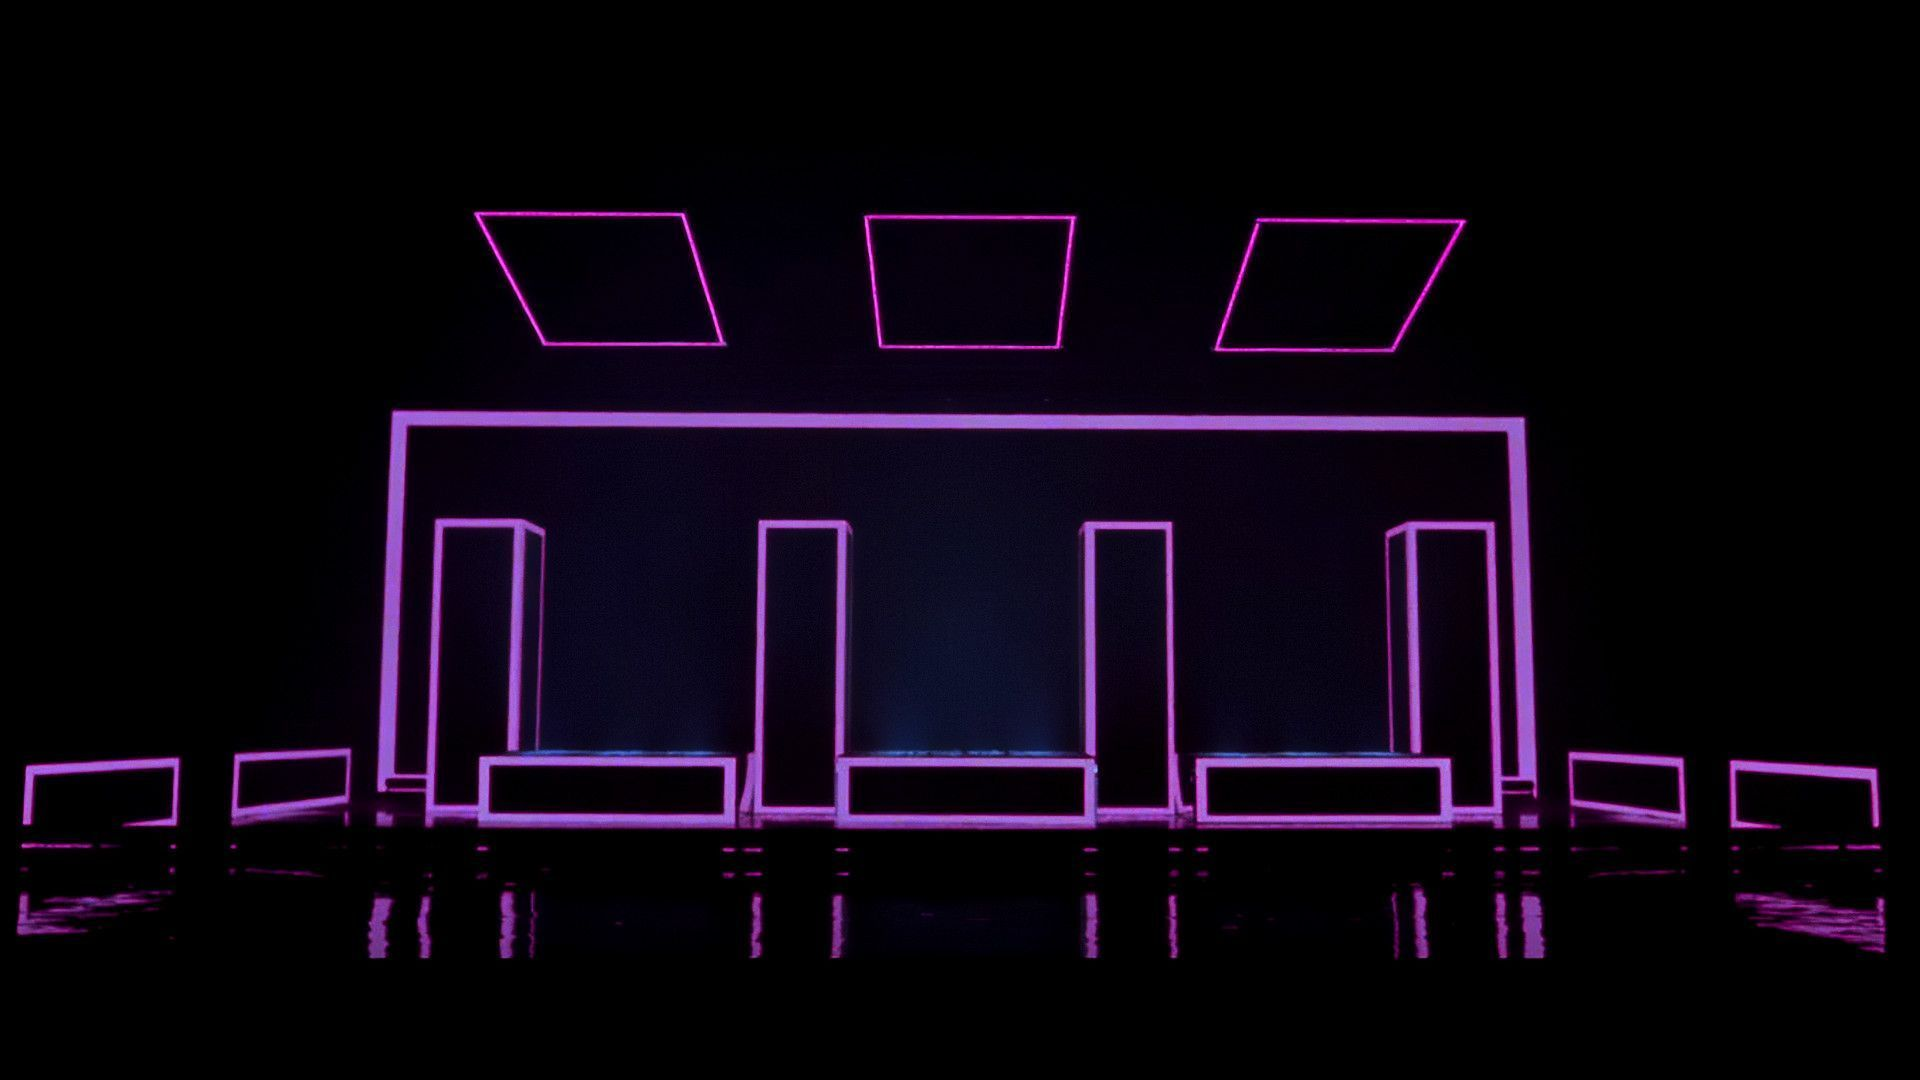 The 1975 Desktop Wallpaper Hd In 2020 The 1975 Wallpaper Dark Desktop Backgrounds Desktop Wallpaper